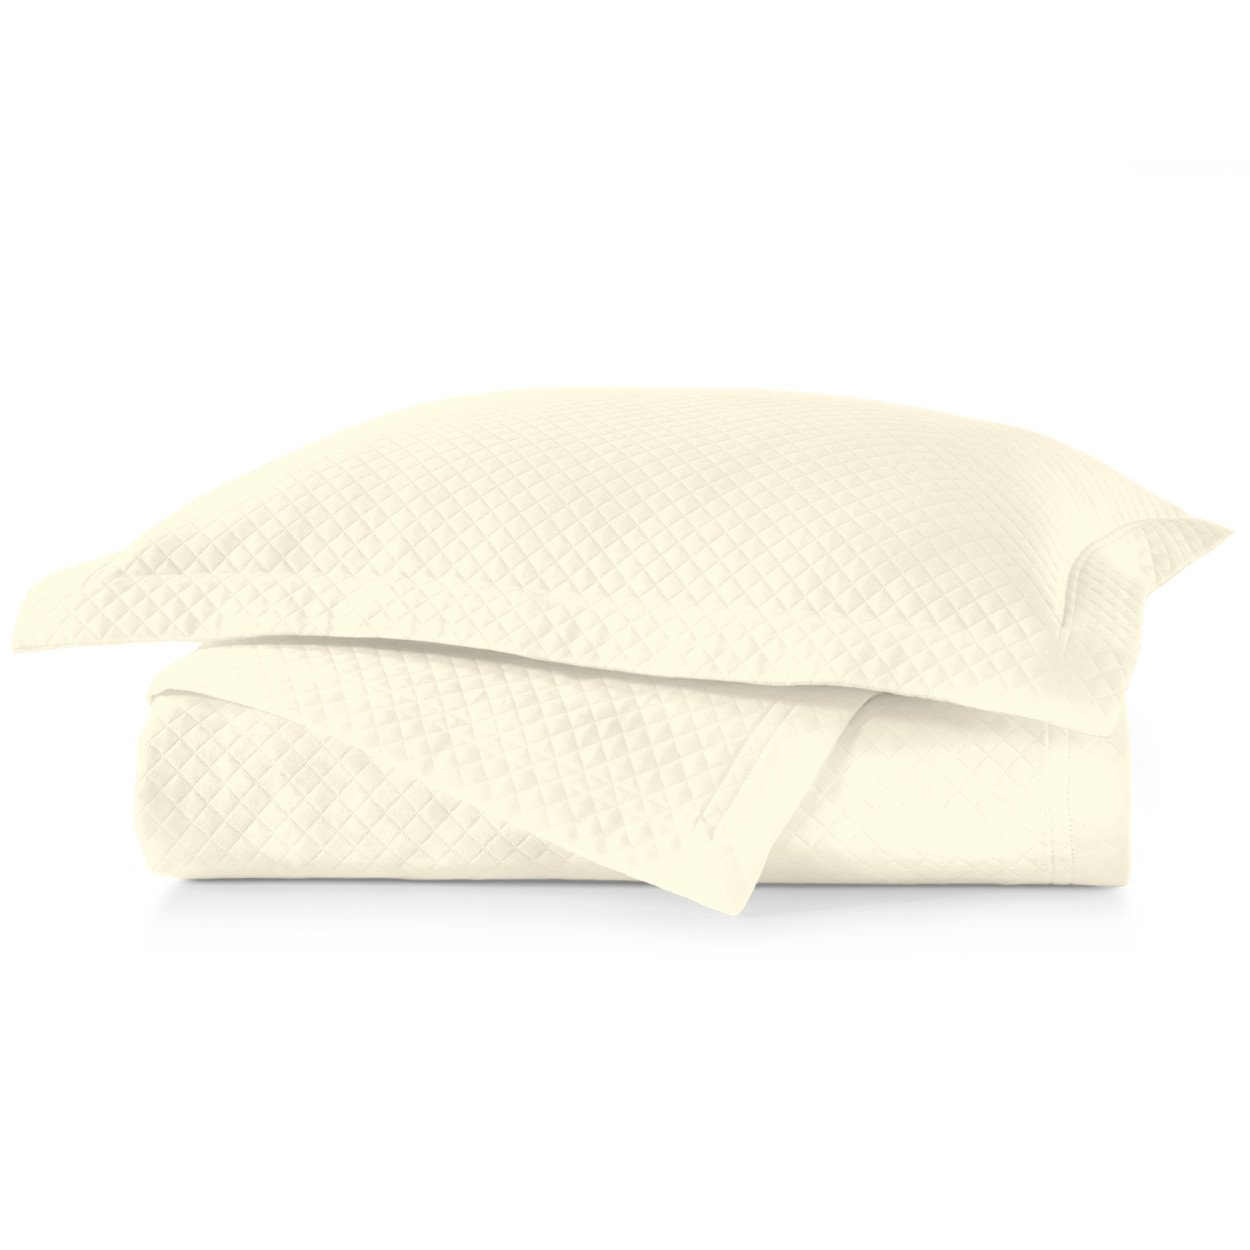 Oxford Ivory Sham on top of Oxford Ivory Coverlet